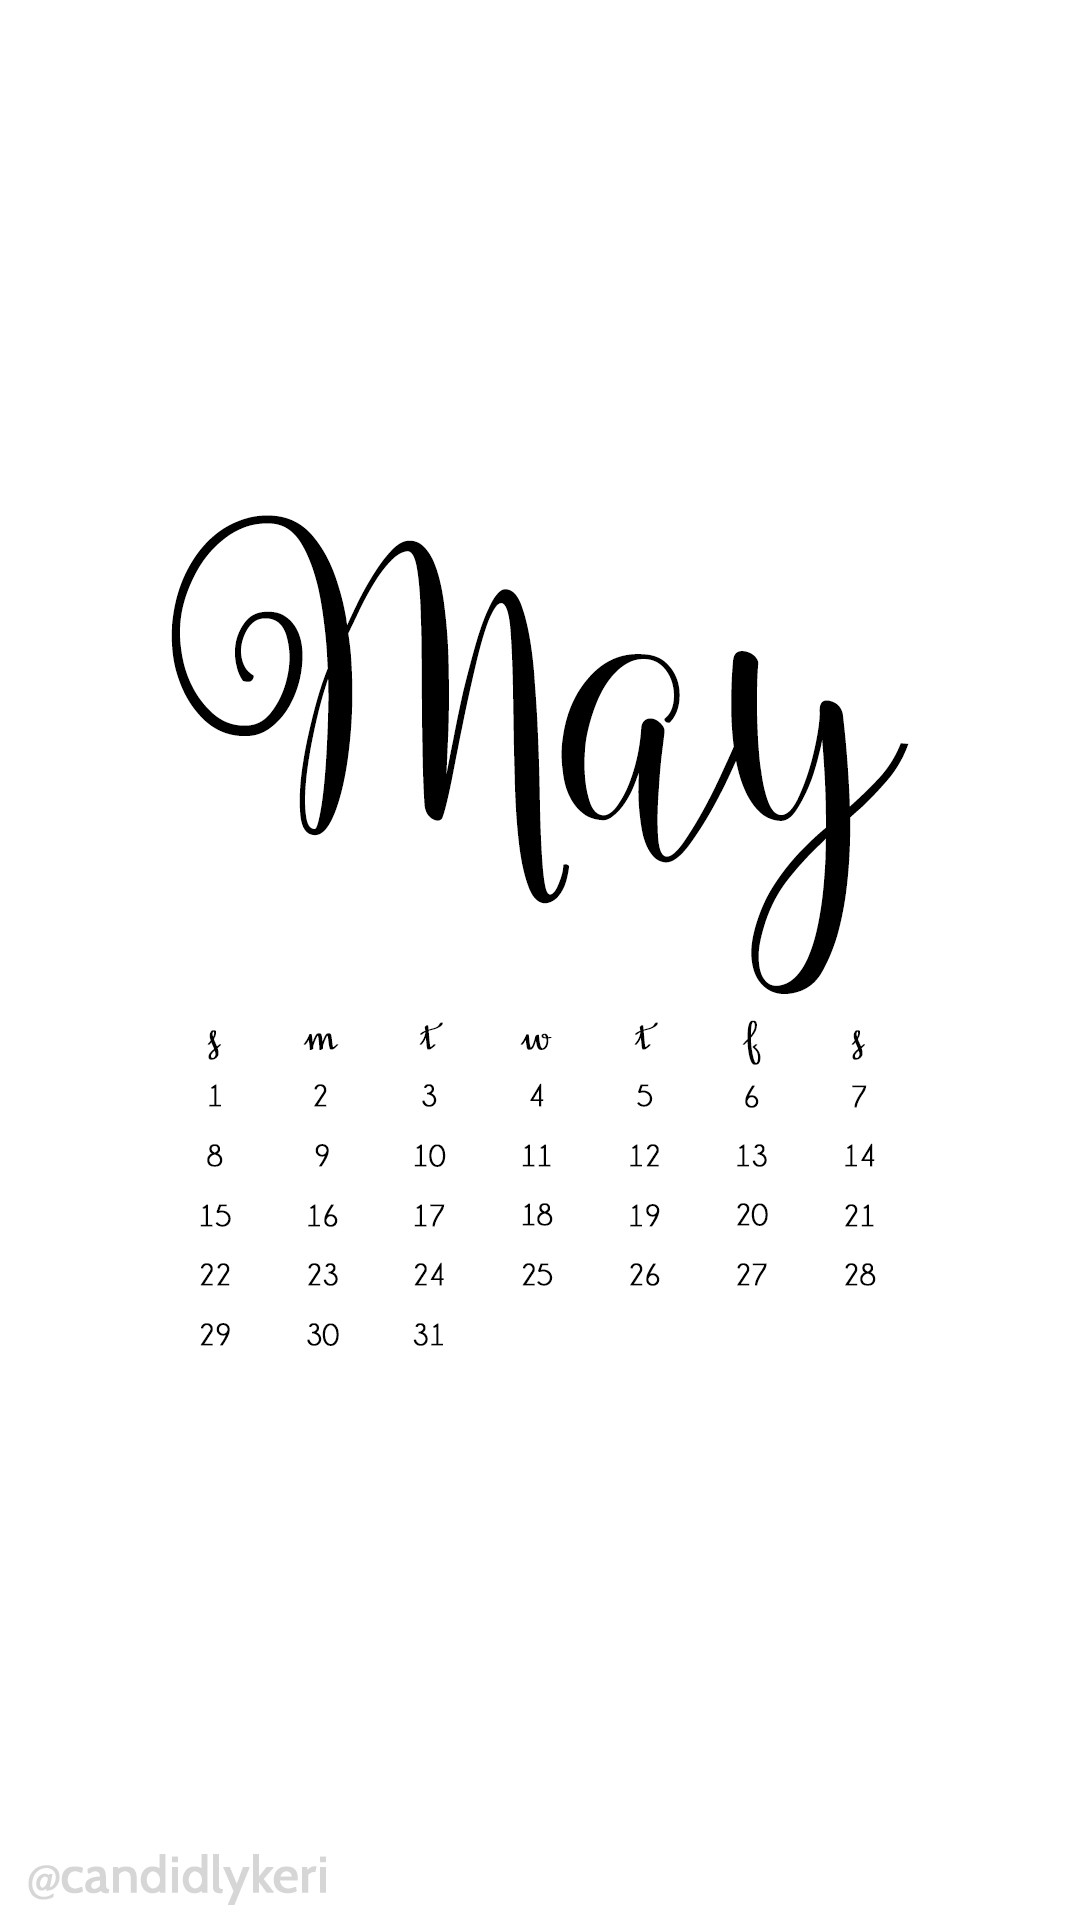 White and black script may 2016 calendar wallpaper free download for iPhone  android or desktop background